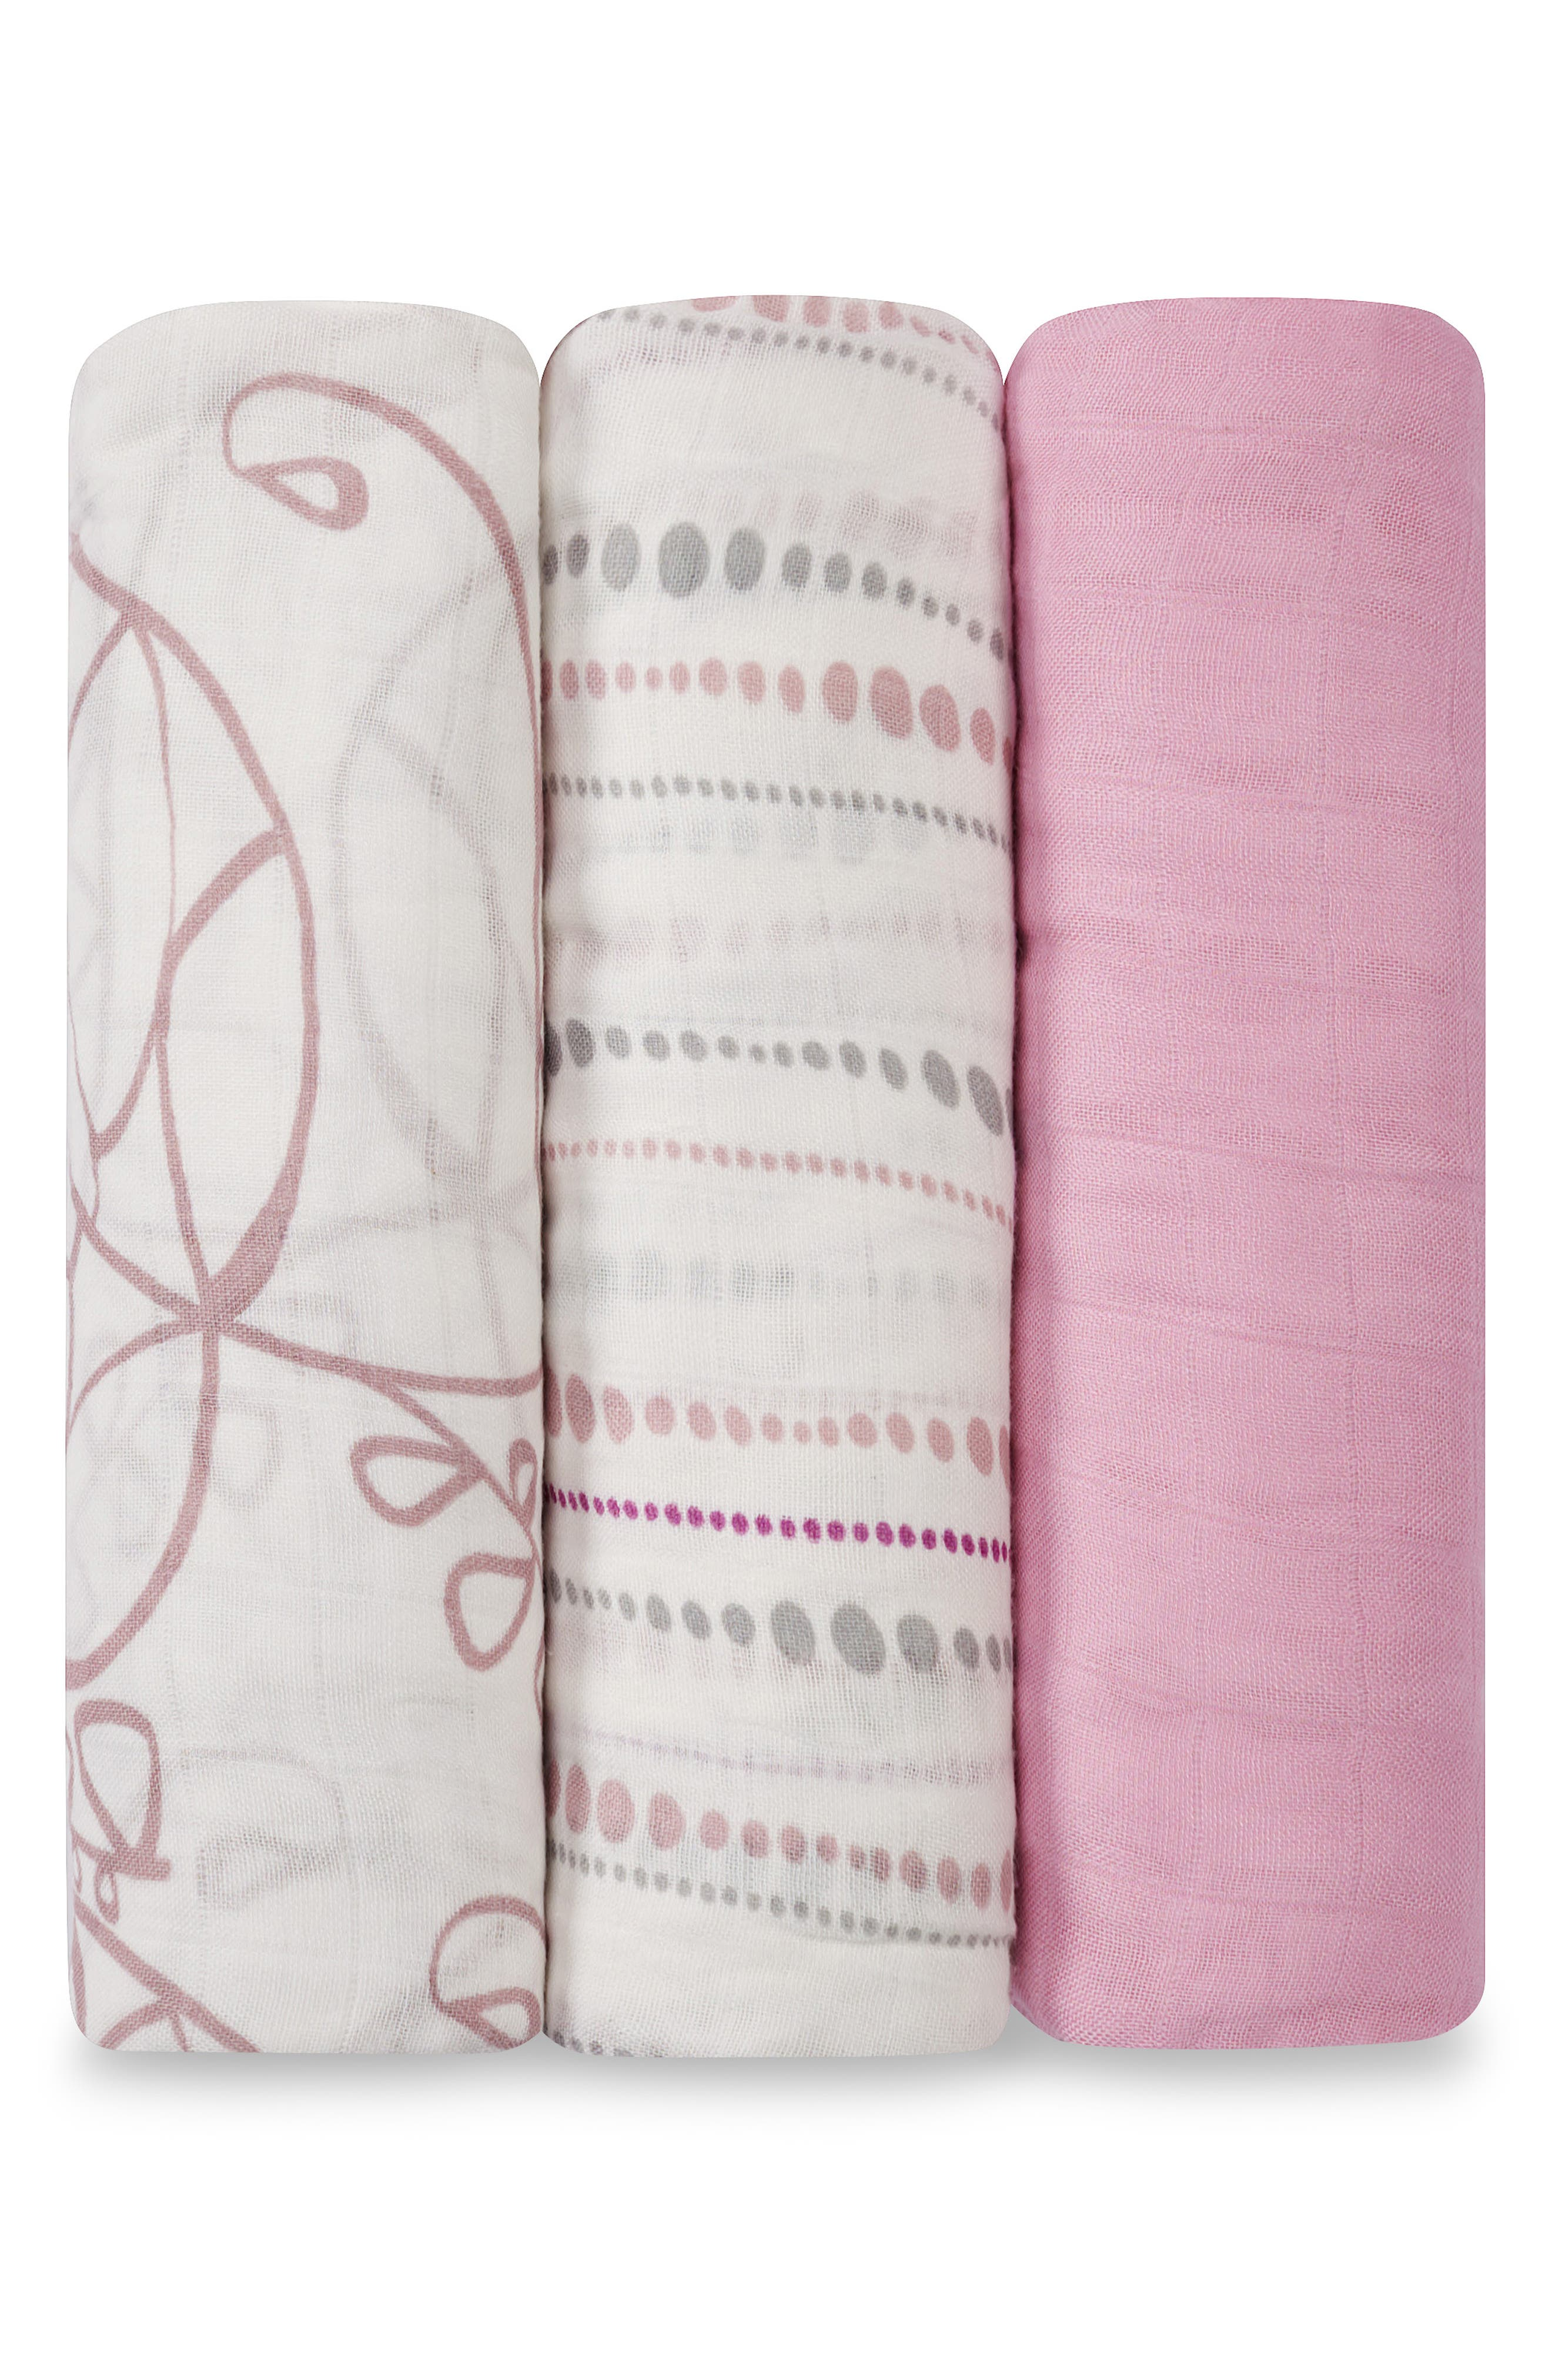 Swaddling Cloths, 3-Pack,                             Alternate thumbnail 2, color,                             TRANQUILITY